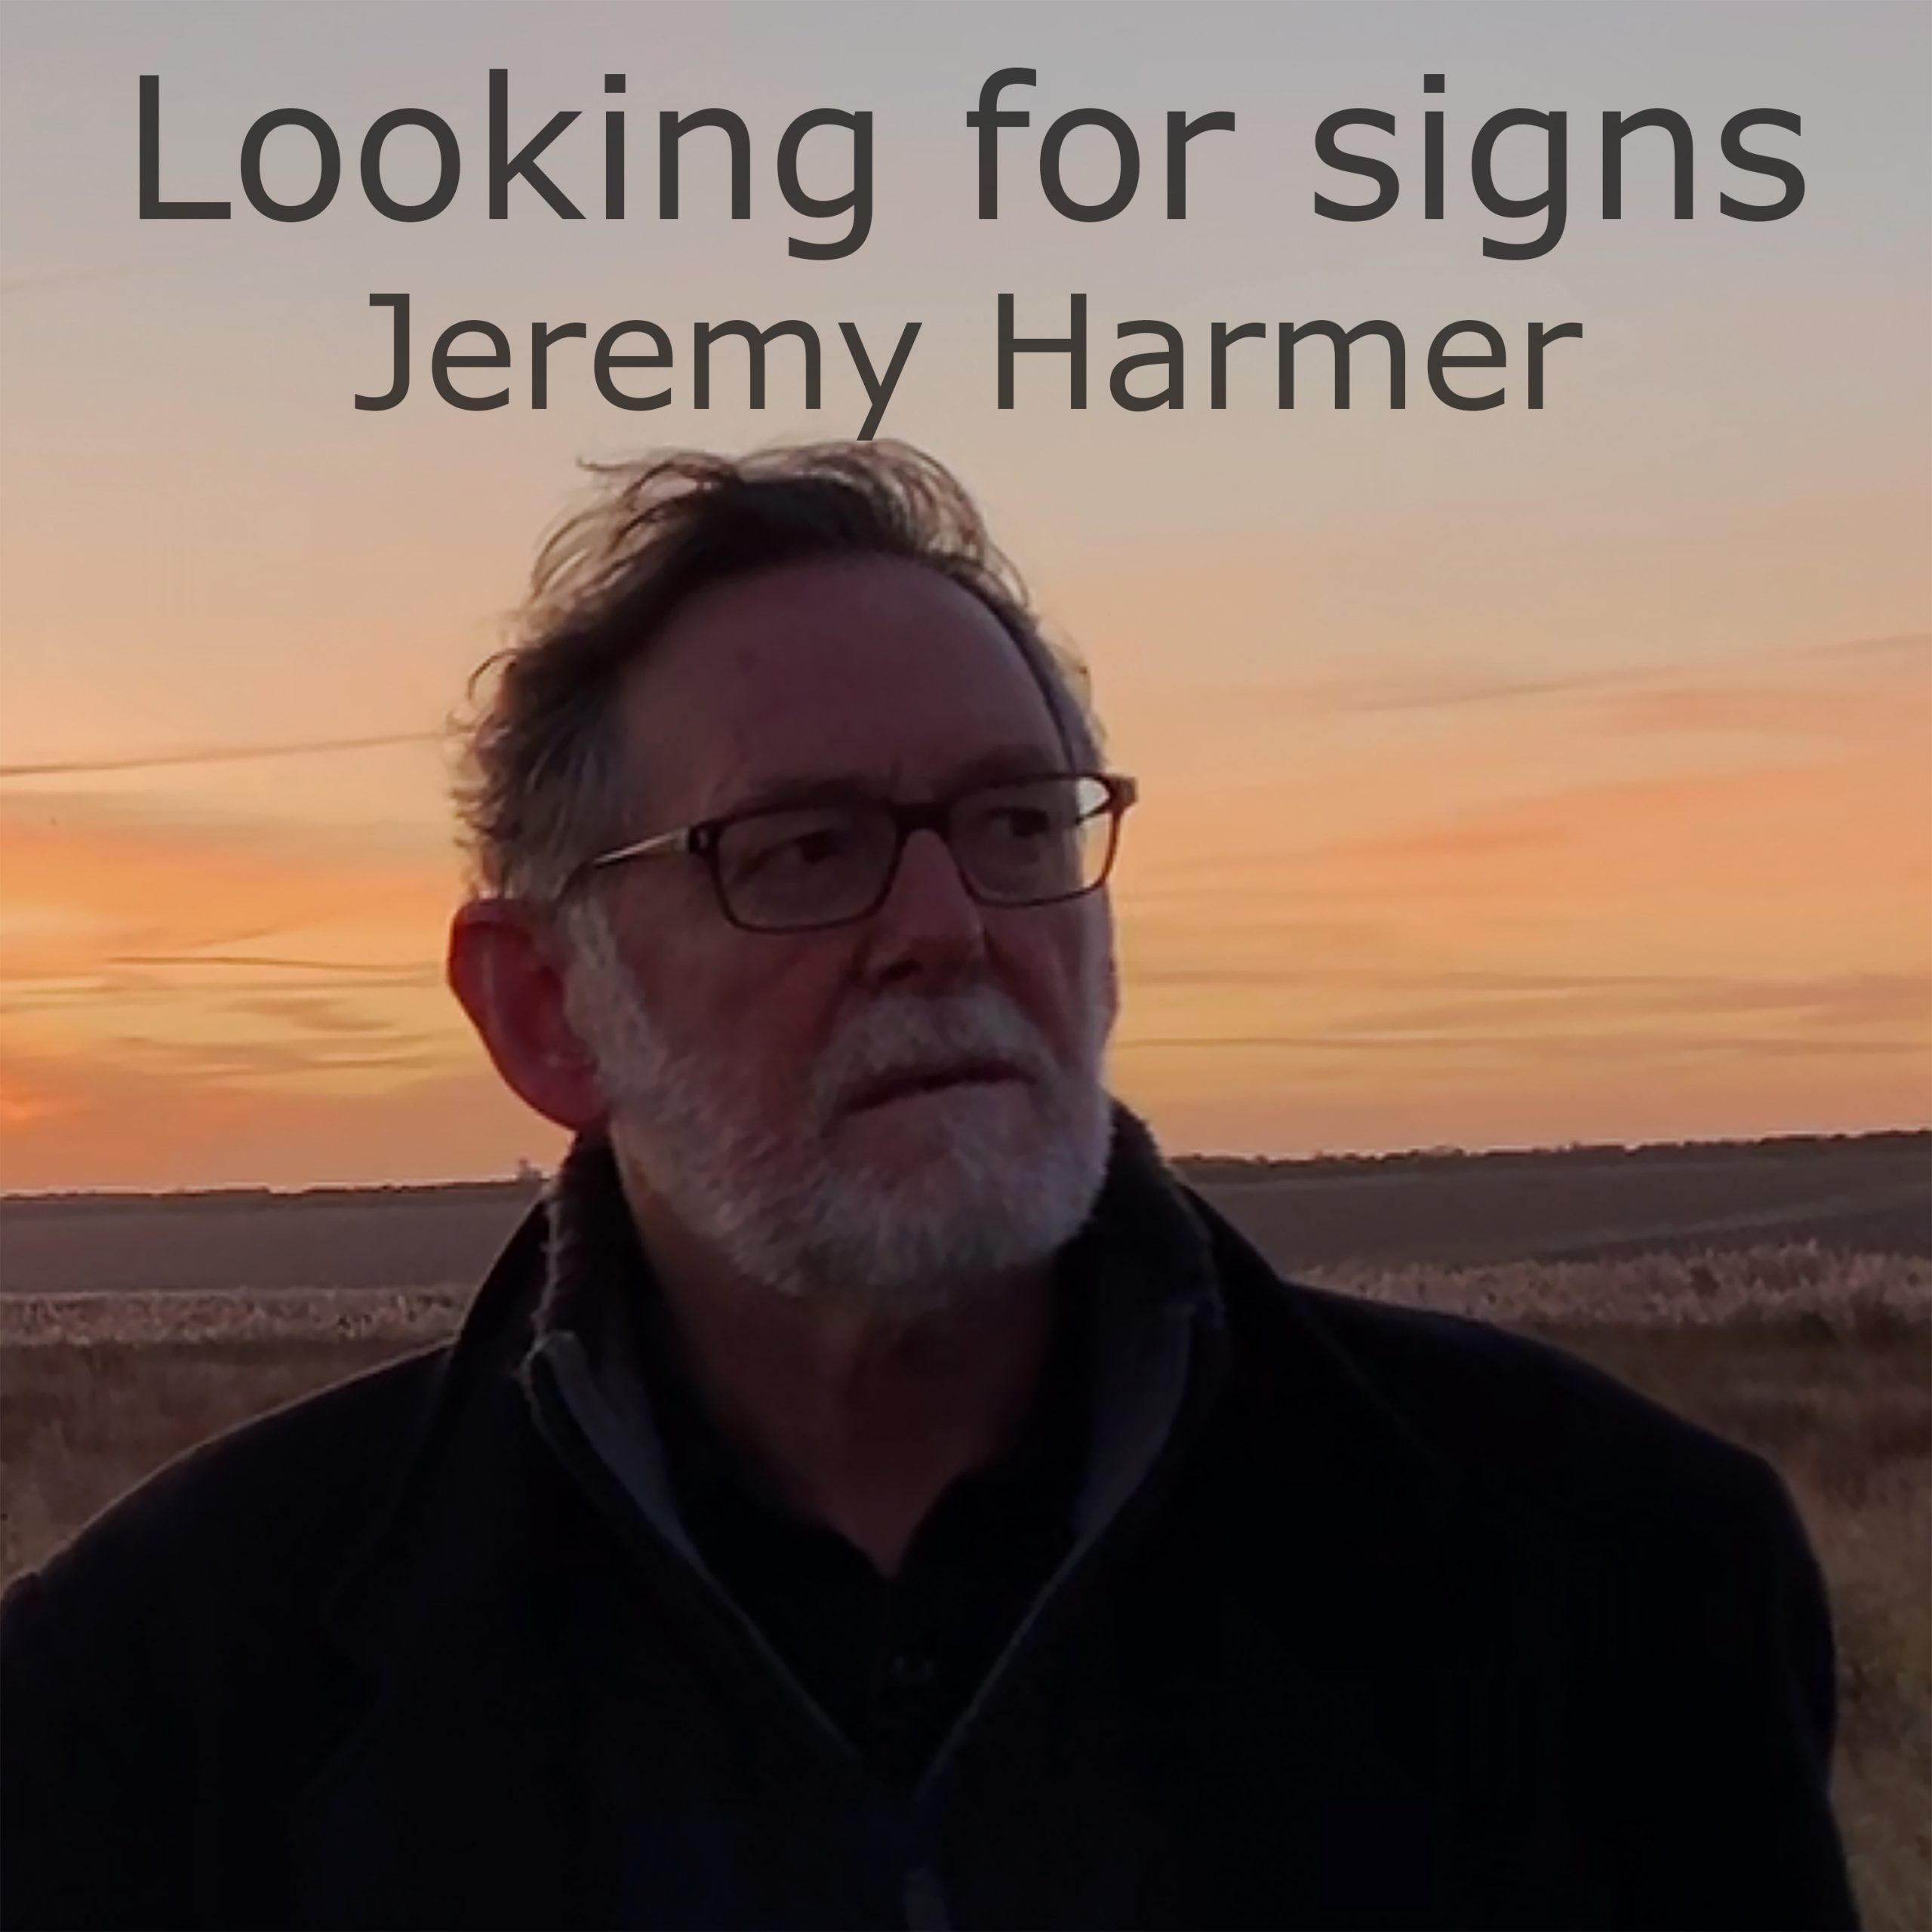 Looking for signs cover